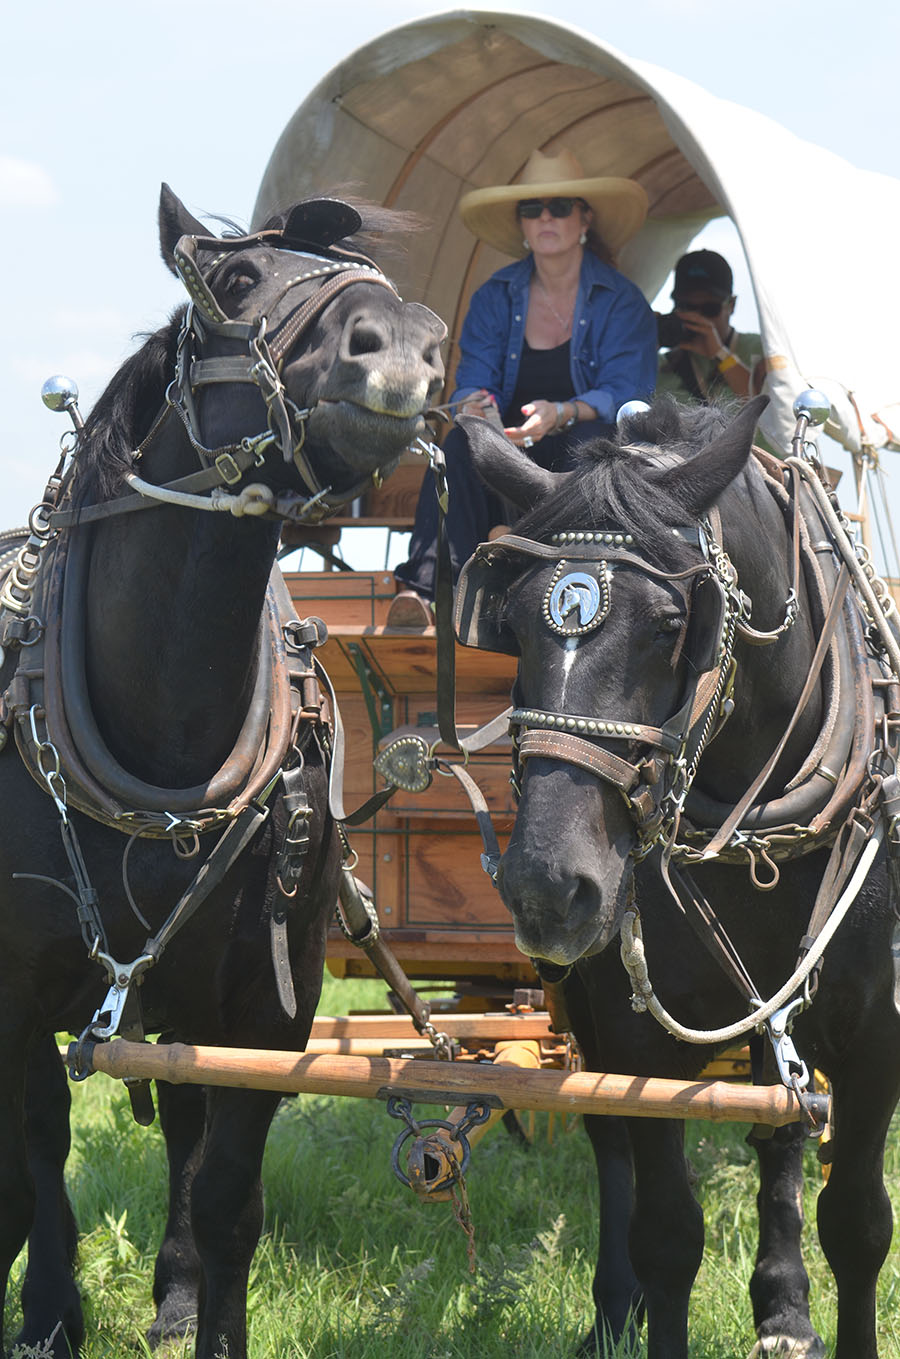 Cindy Morrison, a wagon driver, grabs ahold of her reins as her horse Thor bucks up his head. She said how her horses start to get excited and often like to pose for the camera when people take their photos.  (photo by Madeline Deabler)